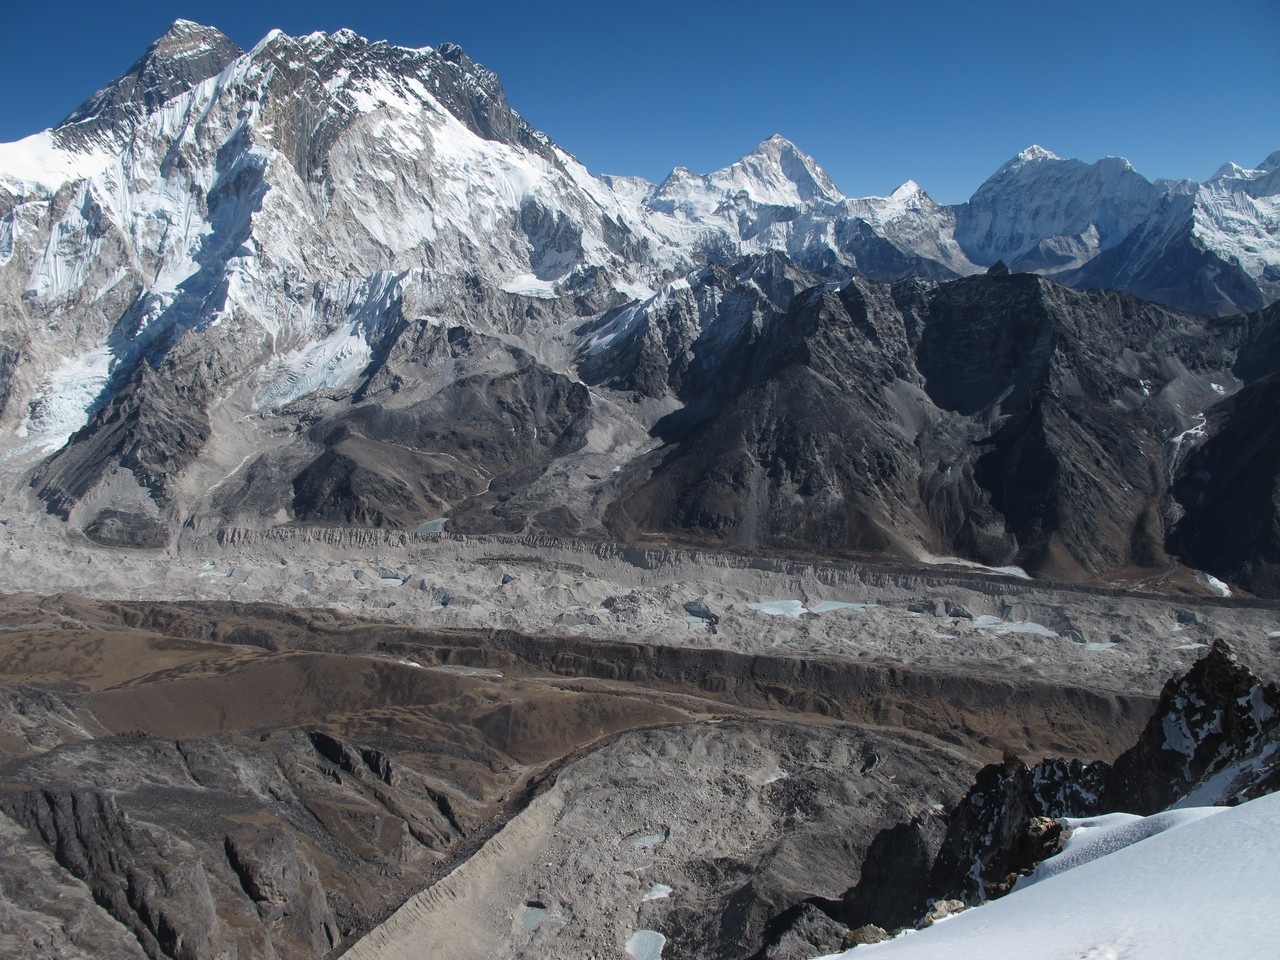 Everest and Khumbu glacier in the Dudh Koshi basin (Credit: Patrick Wagnon)